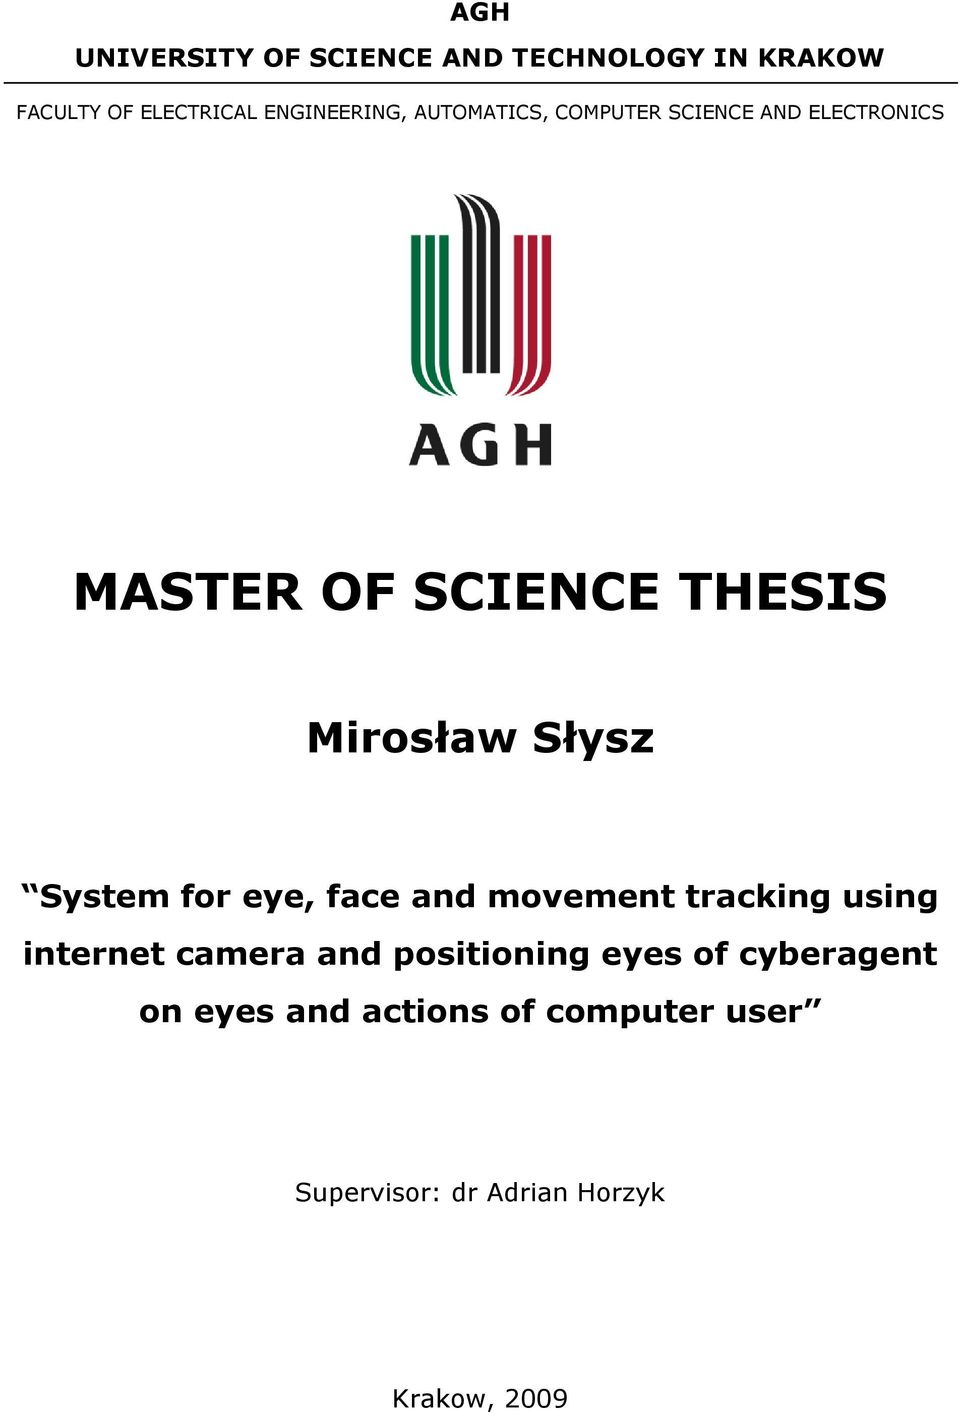 System for eye, face and movement tracking using internet camera and positioning eyes